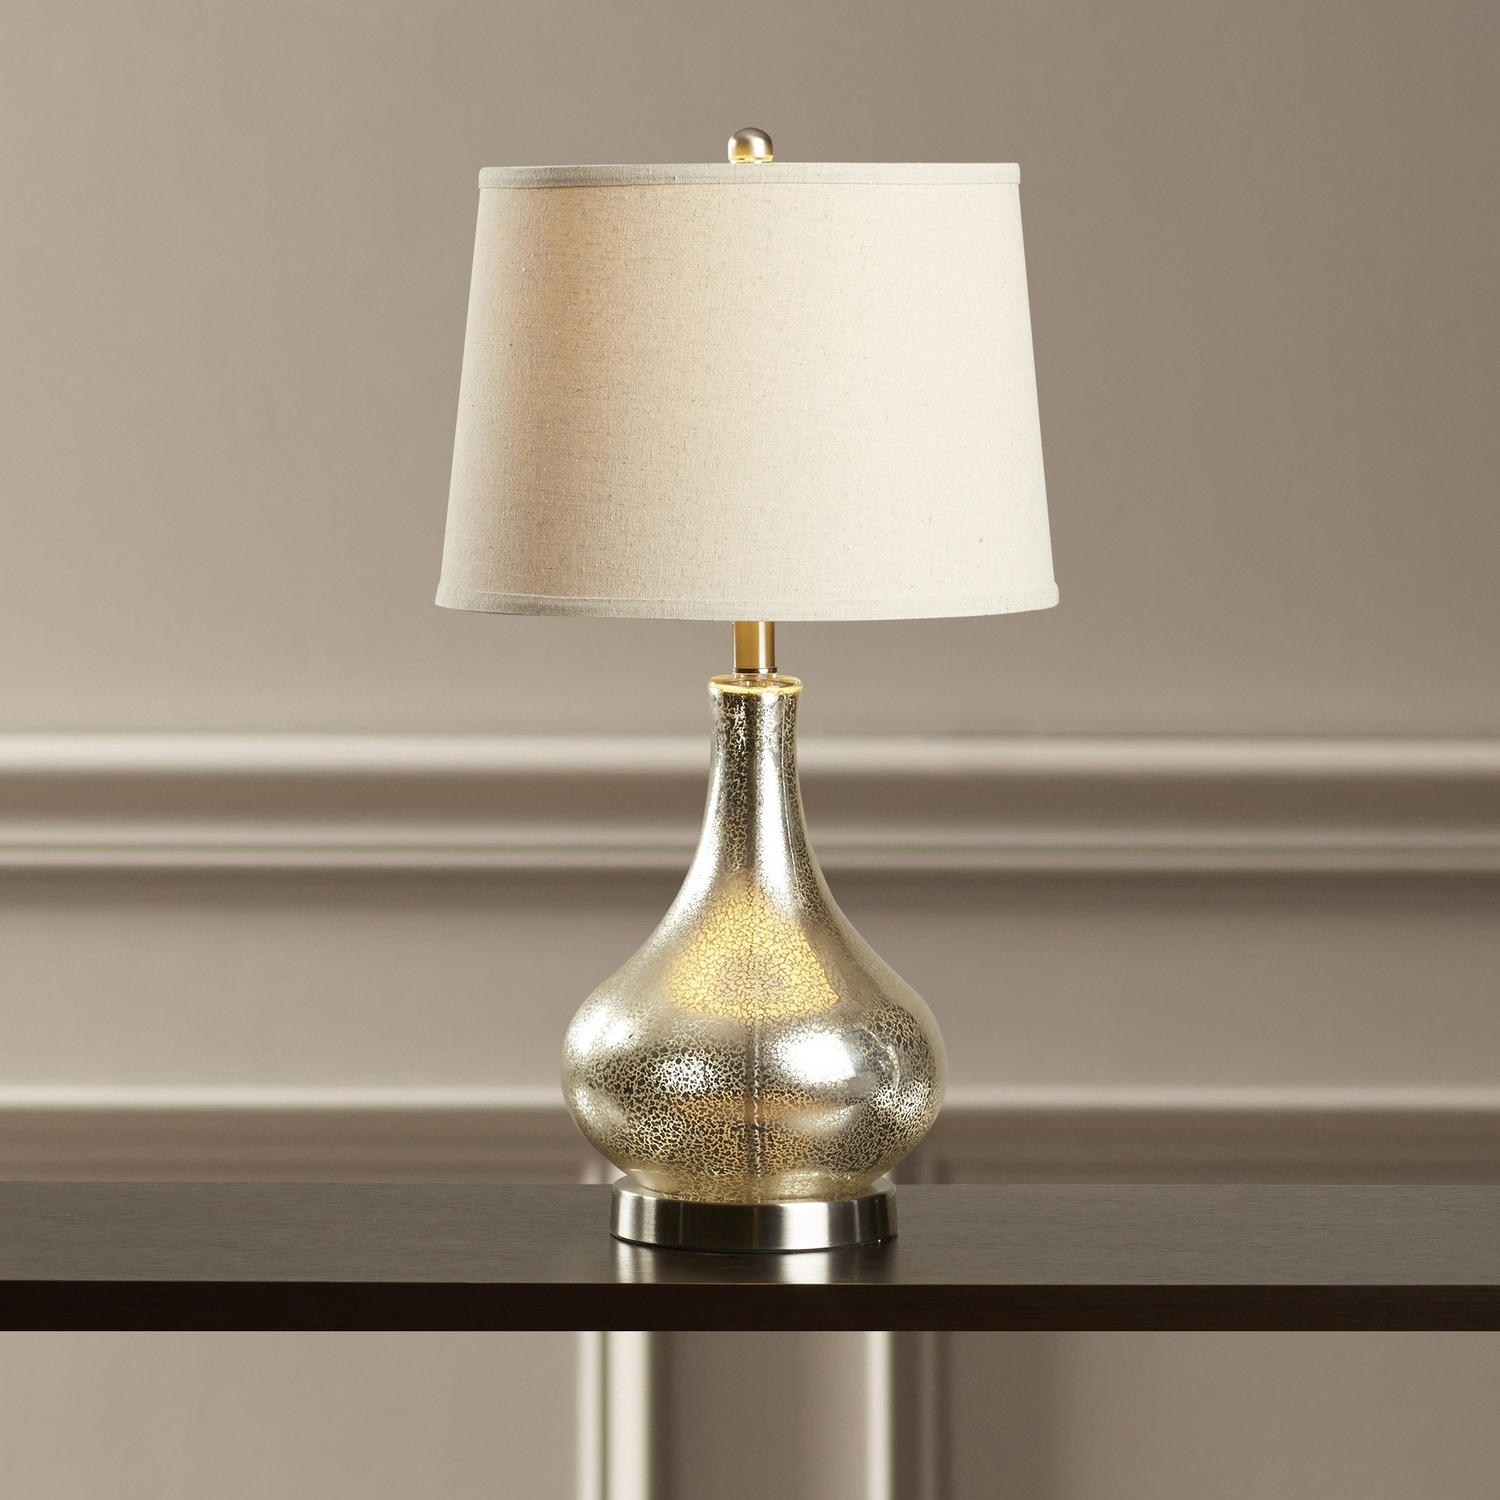 62 Most Class Cheap Table Lamps Glass Bedroom Small For Living Room Pertaining To Preferred Gold Living Room Table Lamps (Gallery 2 of 20)